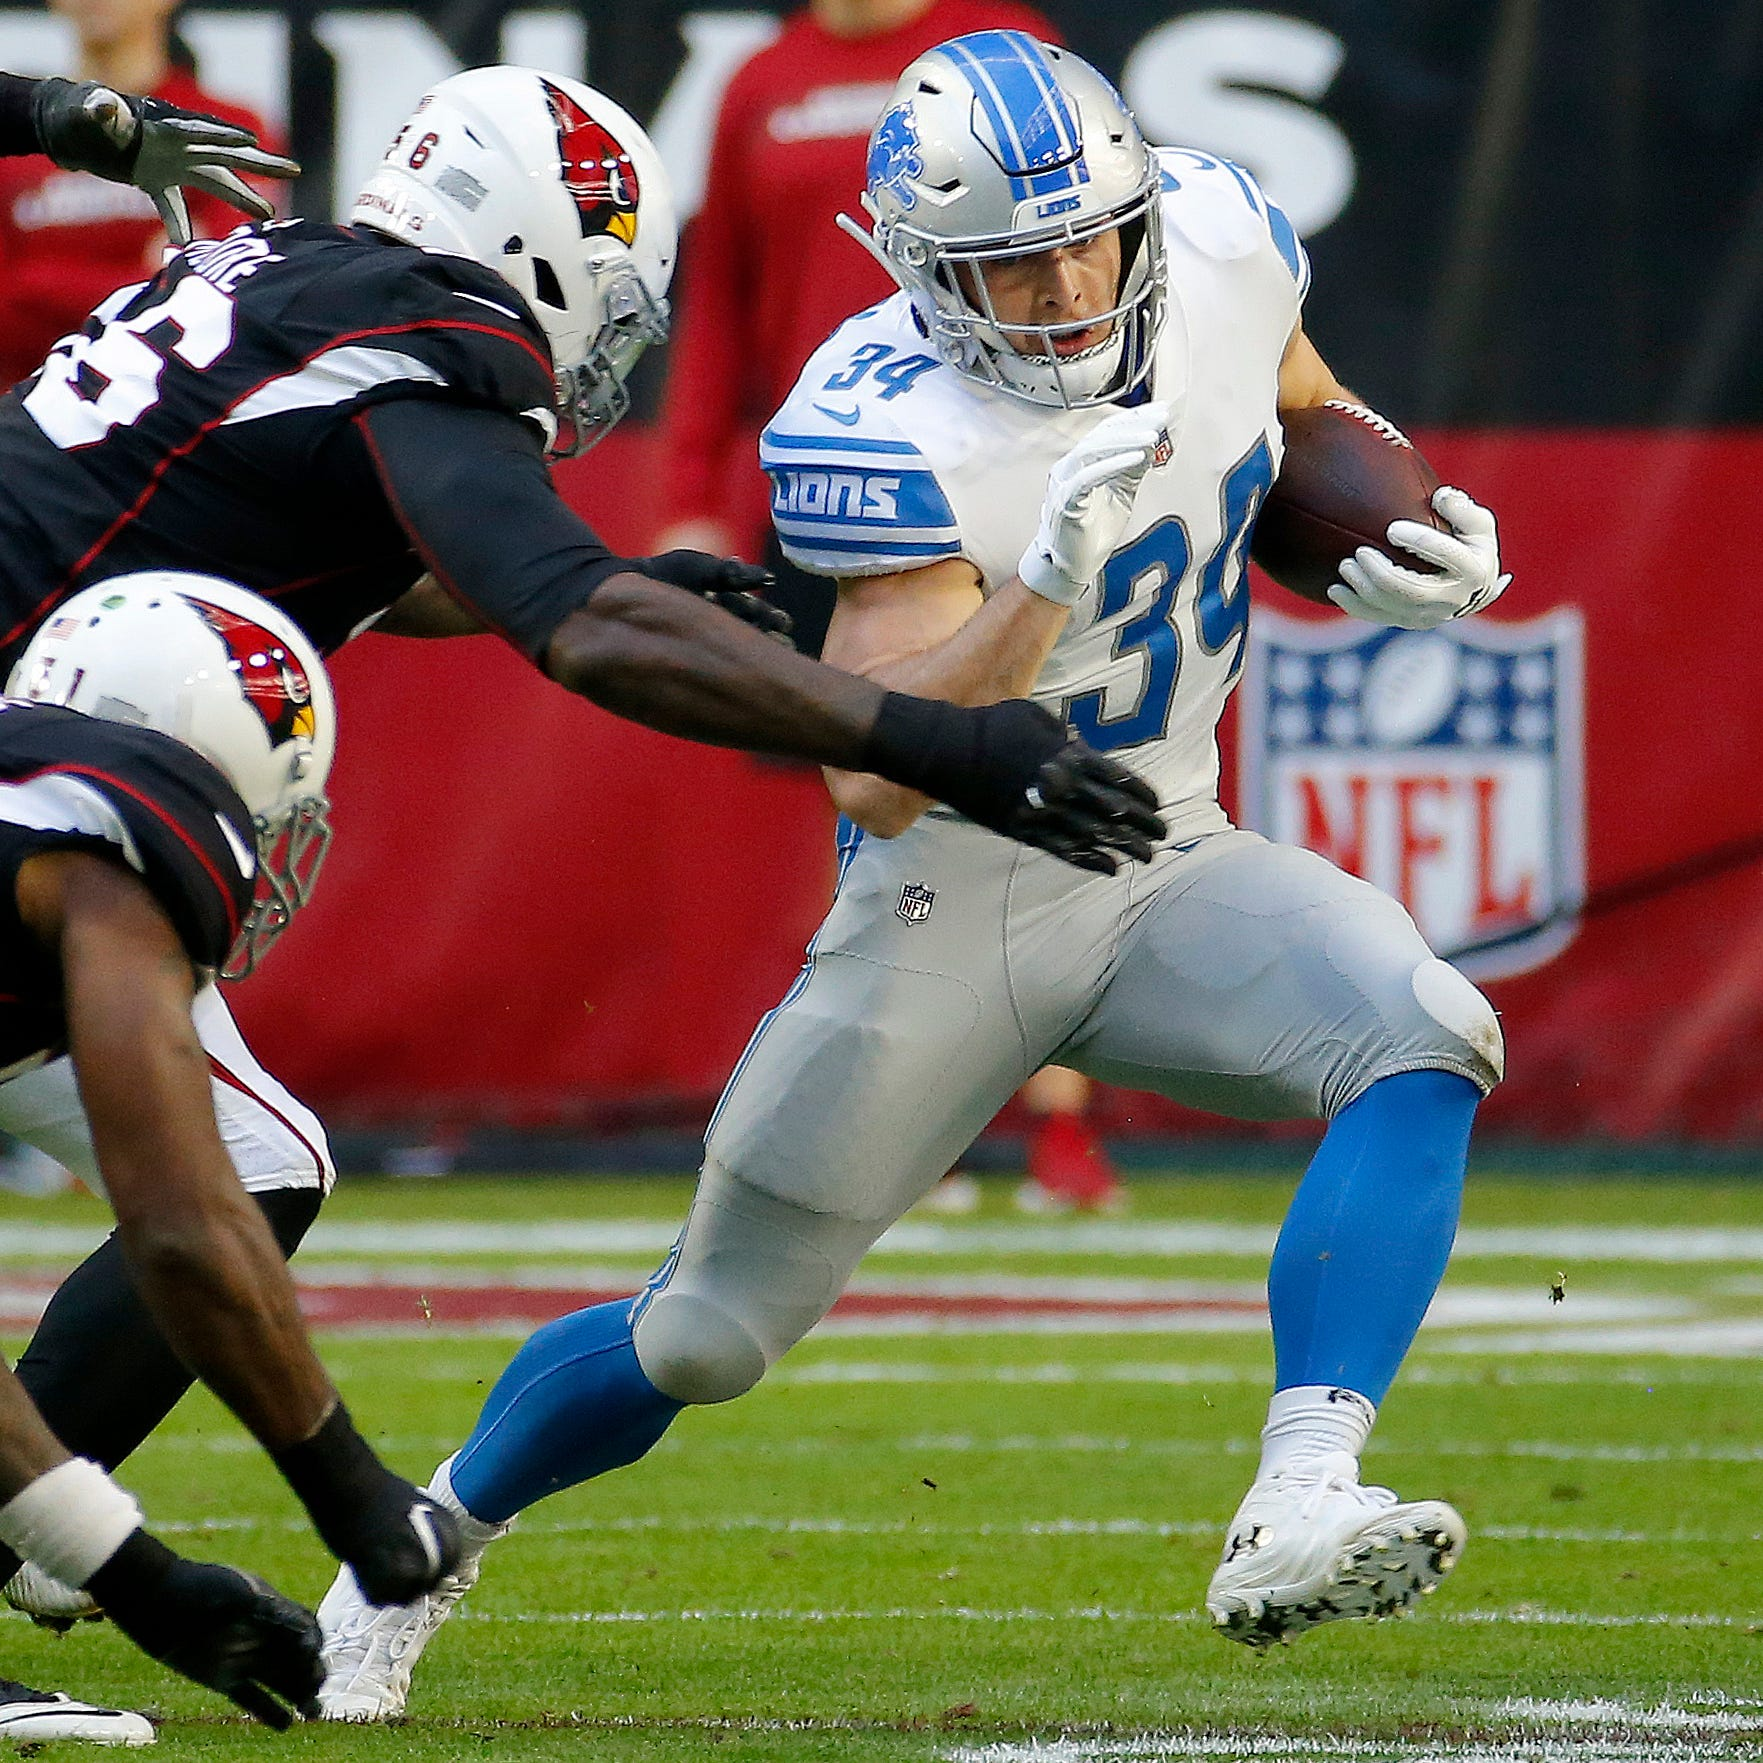 Zach Zenner filling void in Lions' injury-riddled backfield